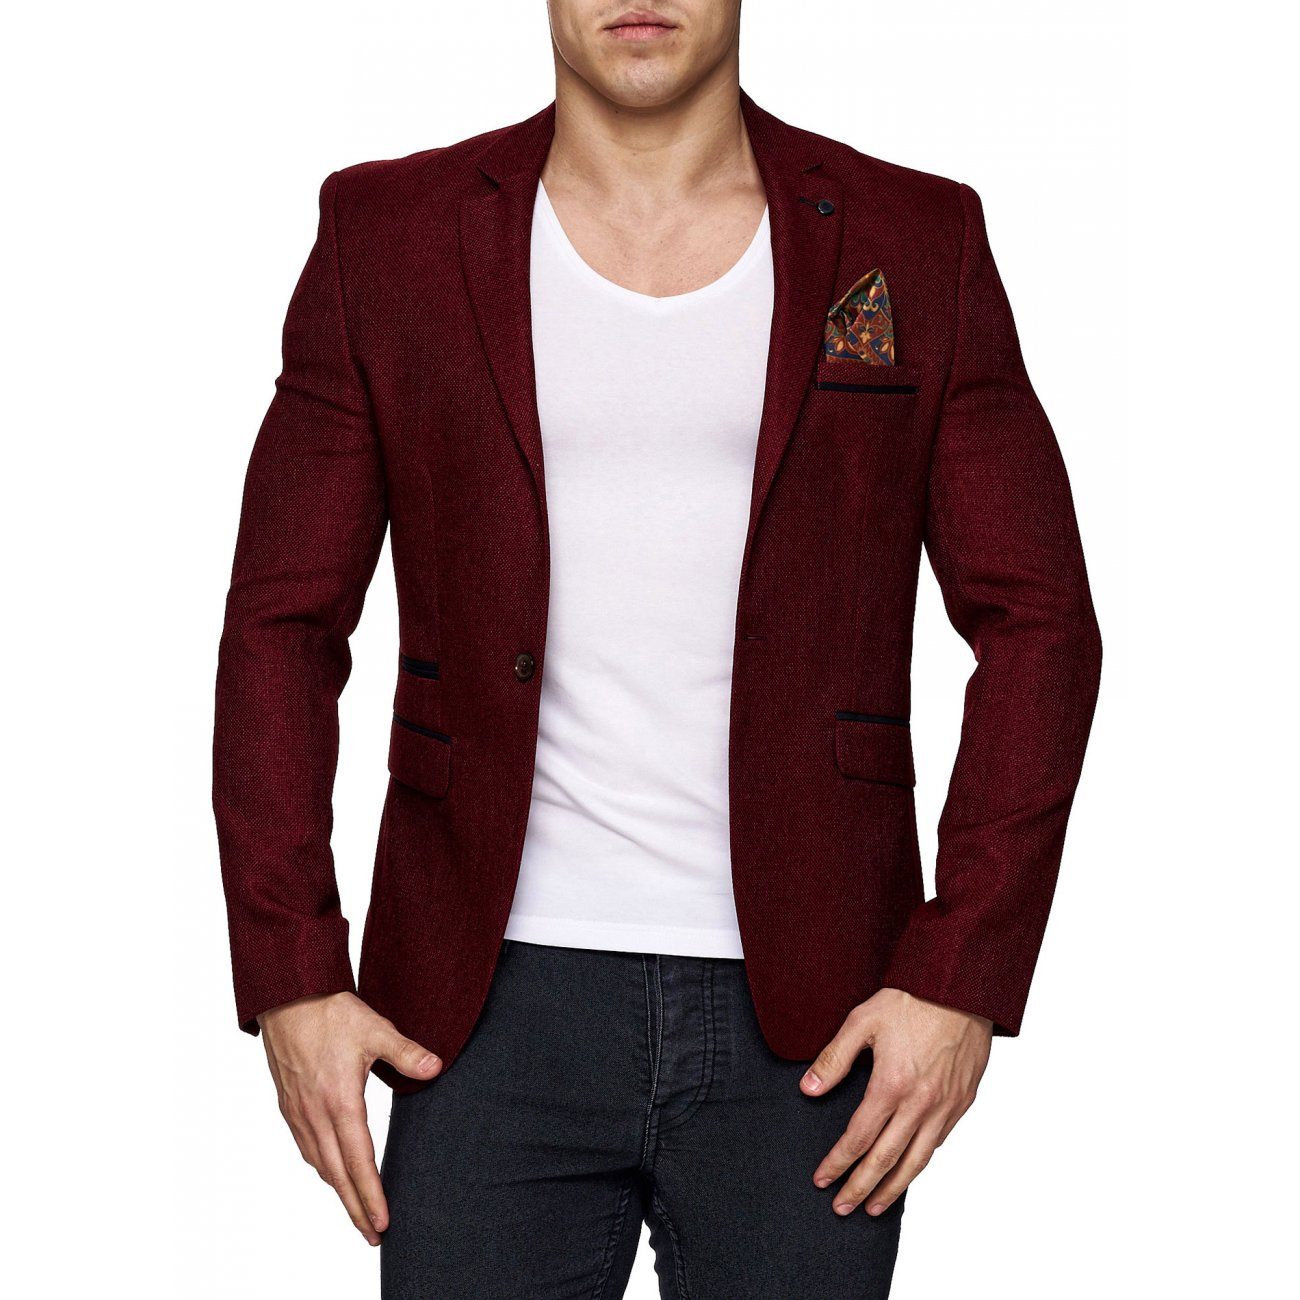 Discover FLATSEVEN men's clothing and accessories including mens casual jackets, blazer, coats, dress shirts, t-shirts, sweaters, suits, chinos, jeans and accessories for men who loves unique style.